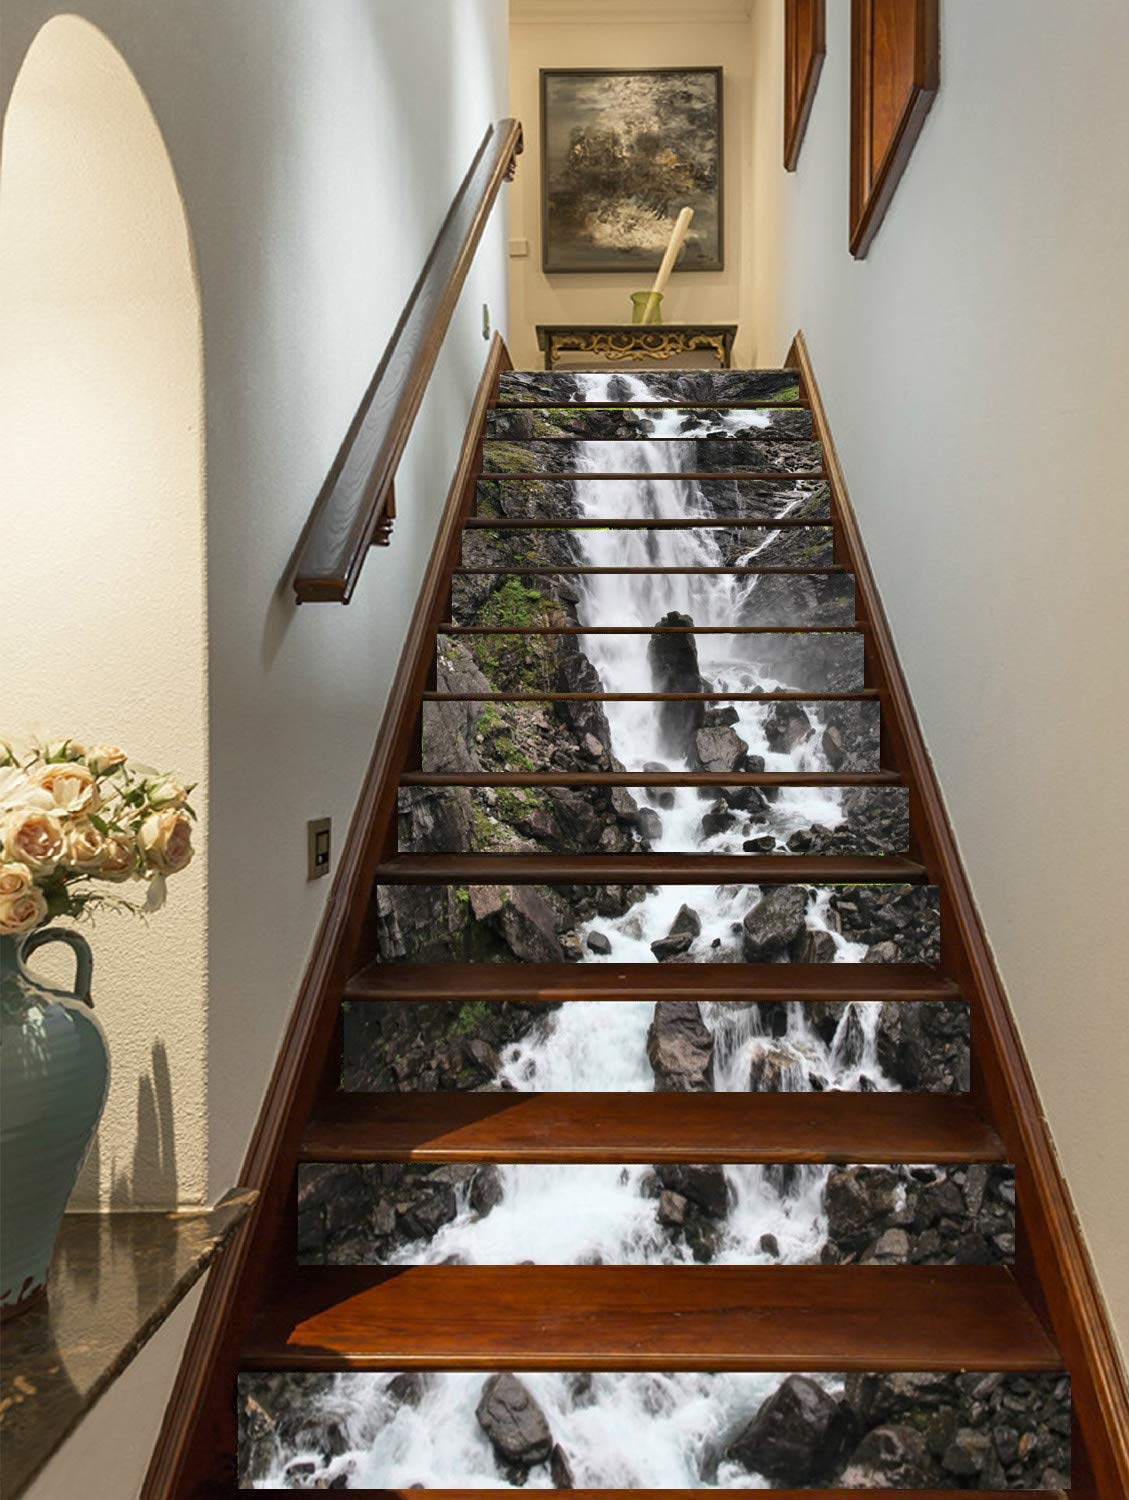 """FLFK 3D Rock Stones Waterfall Stair Riser Stickers Self-Adhesive Staircase Stickers Home Decor 39.3""""x7""""x13PCS"""